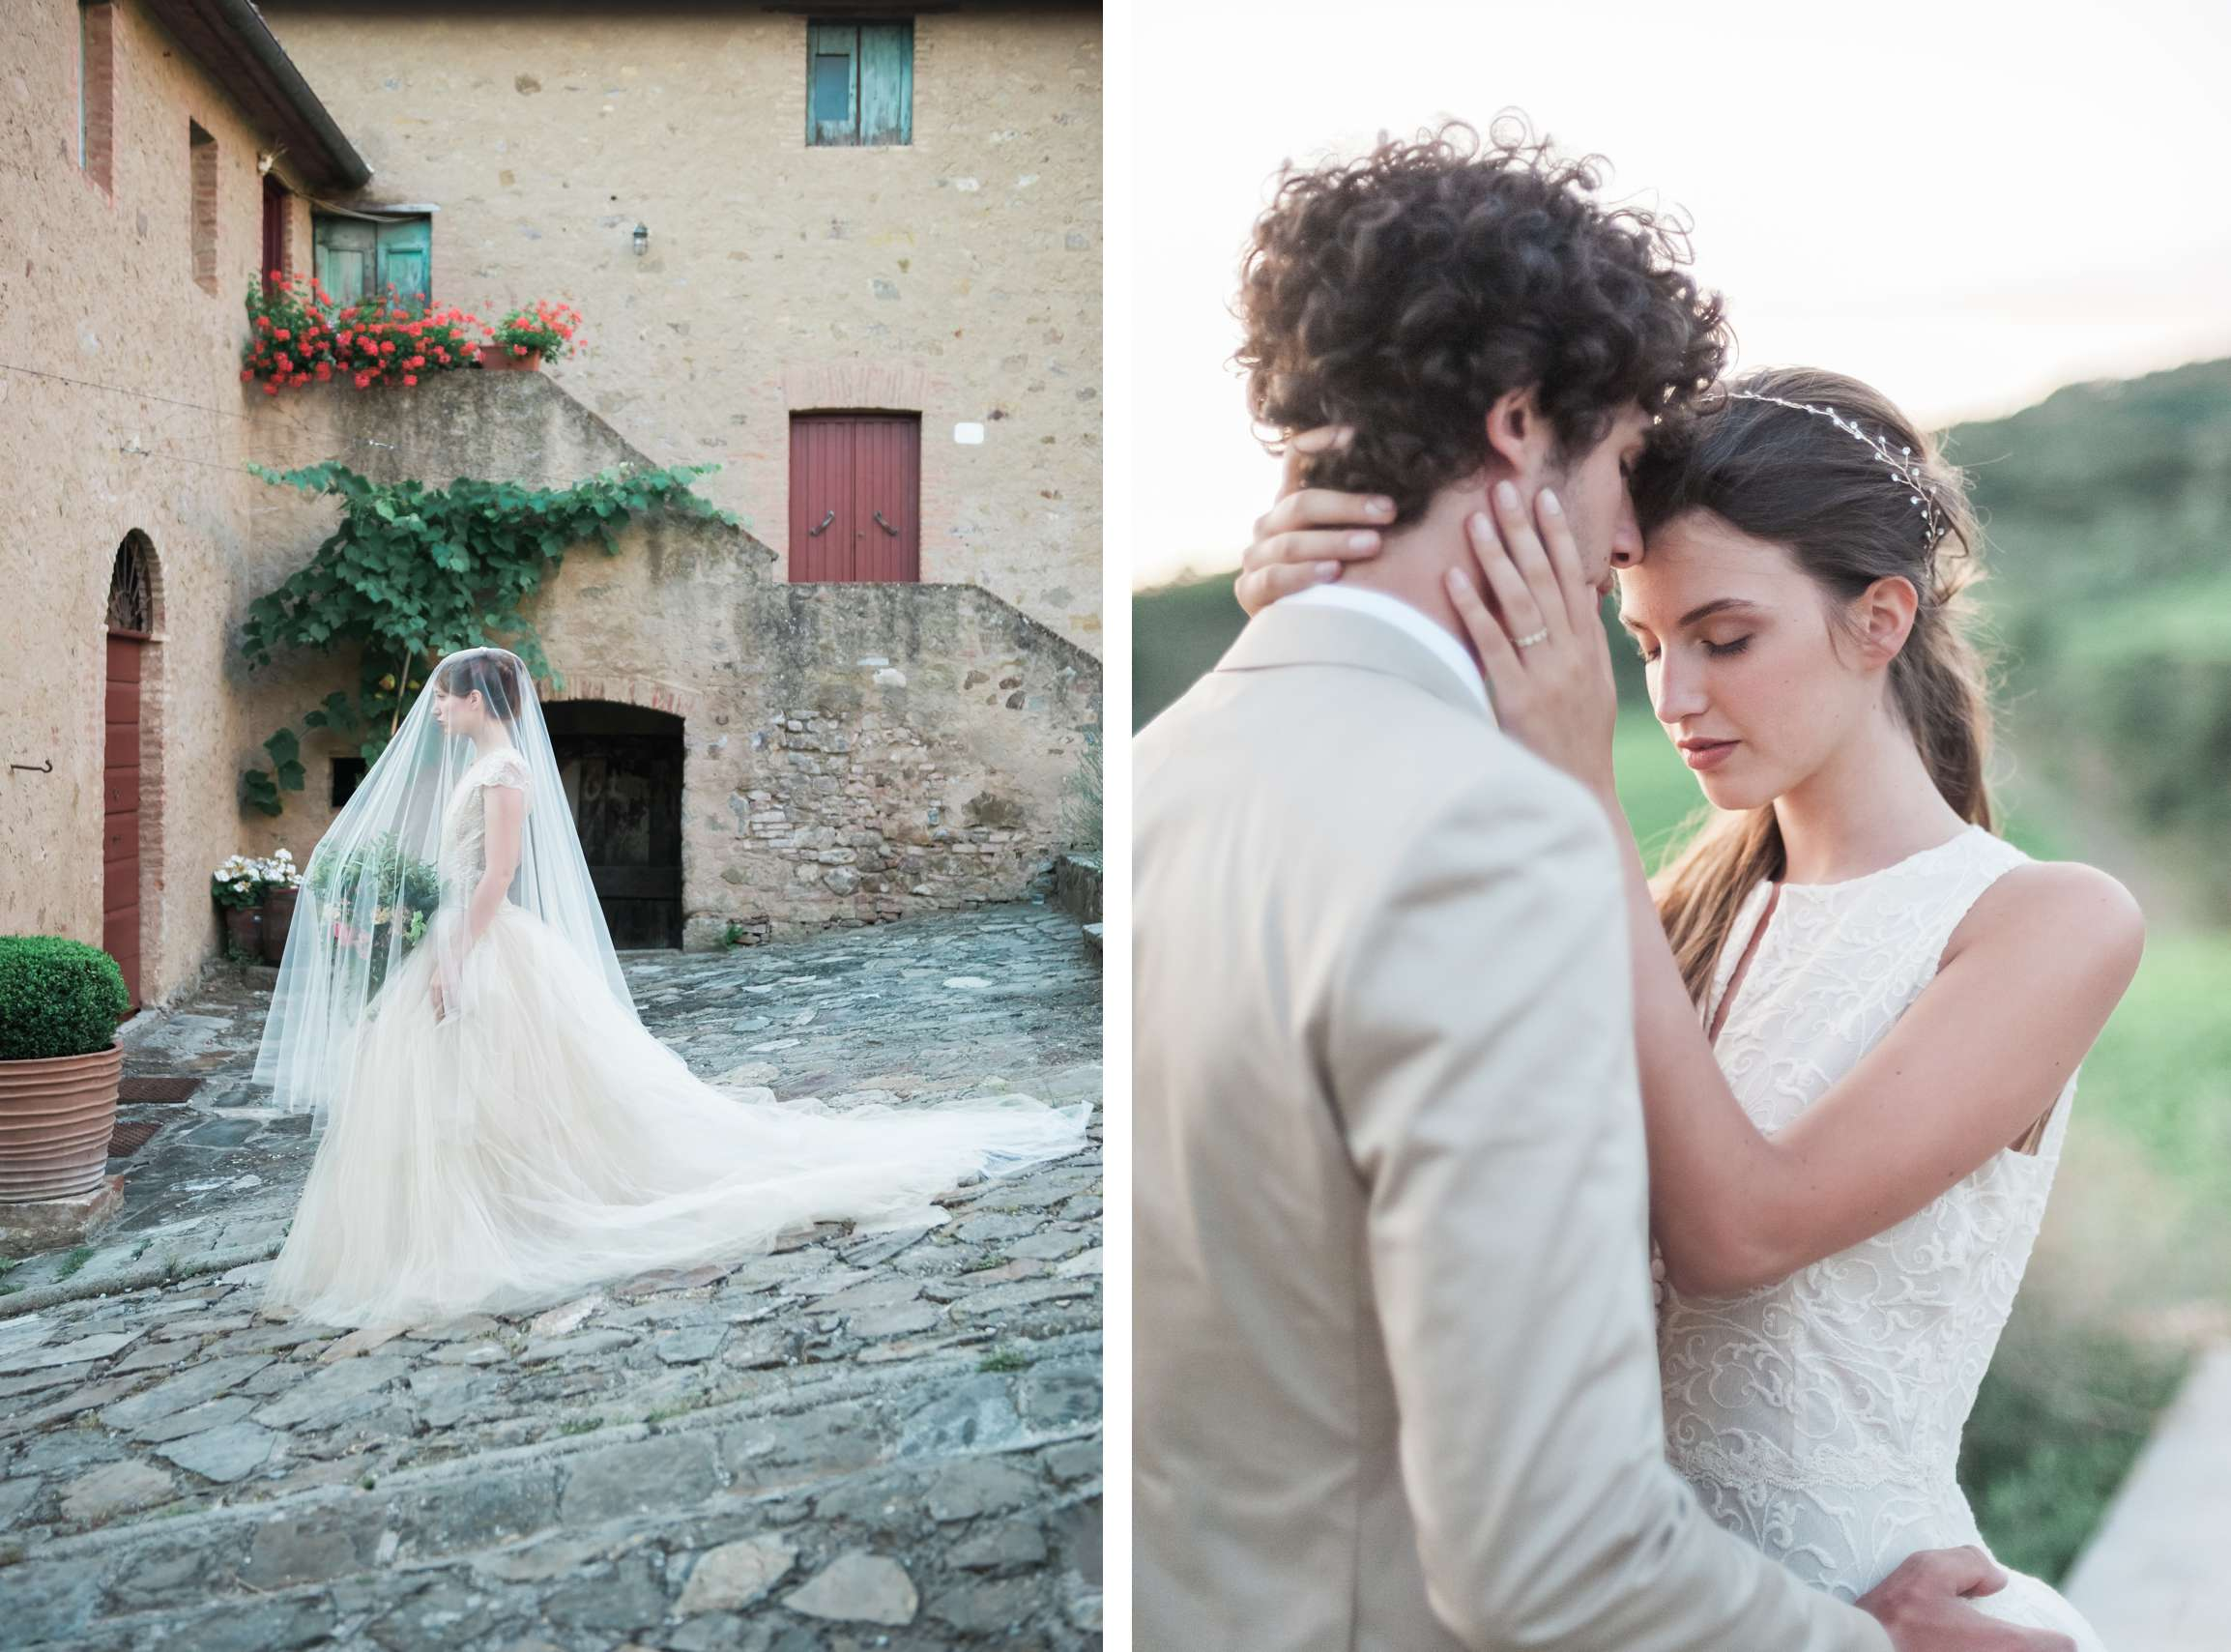 How to choose your wedding photographer?